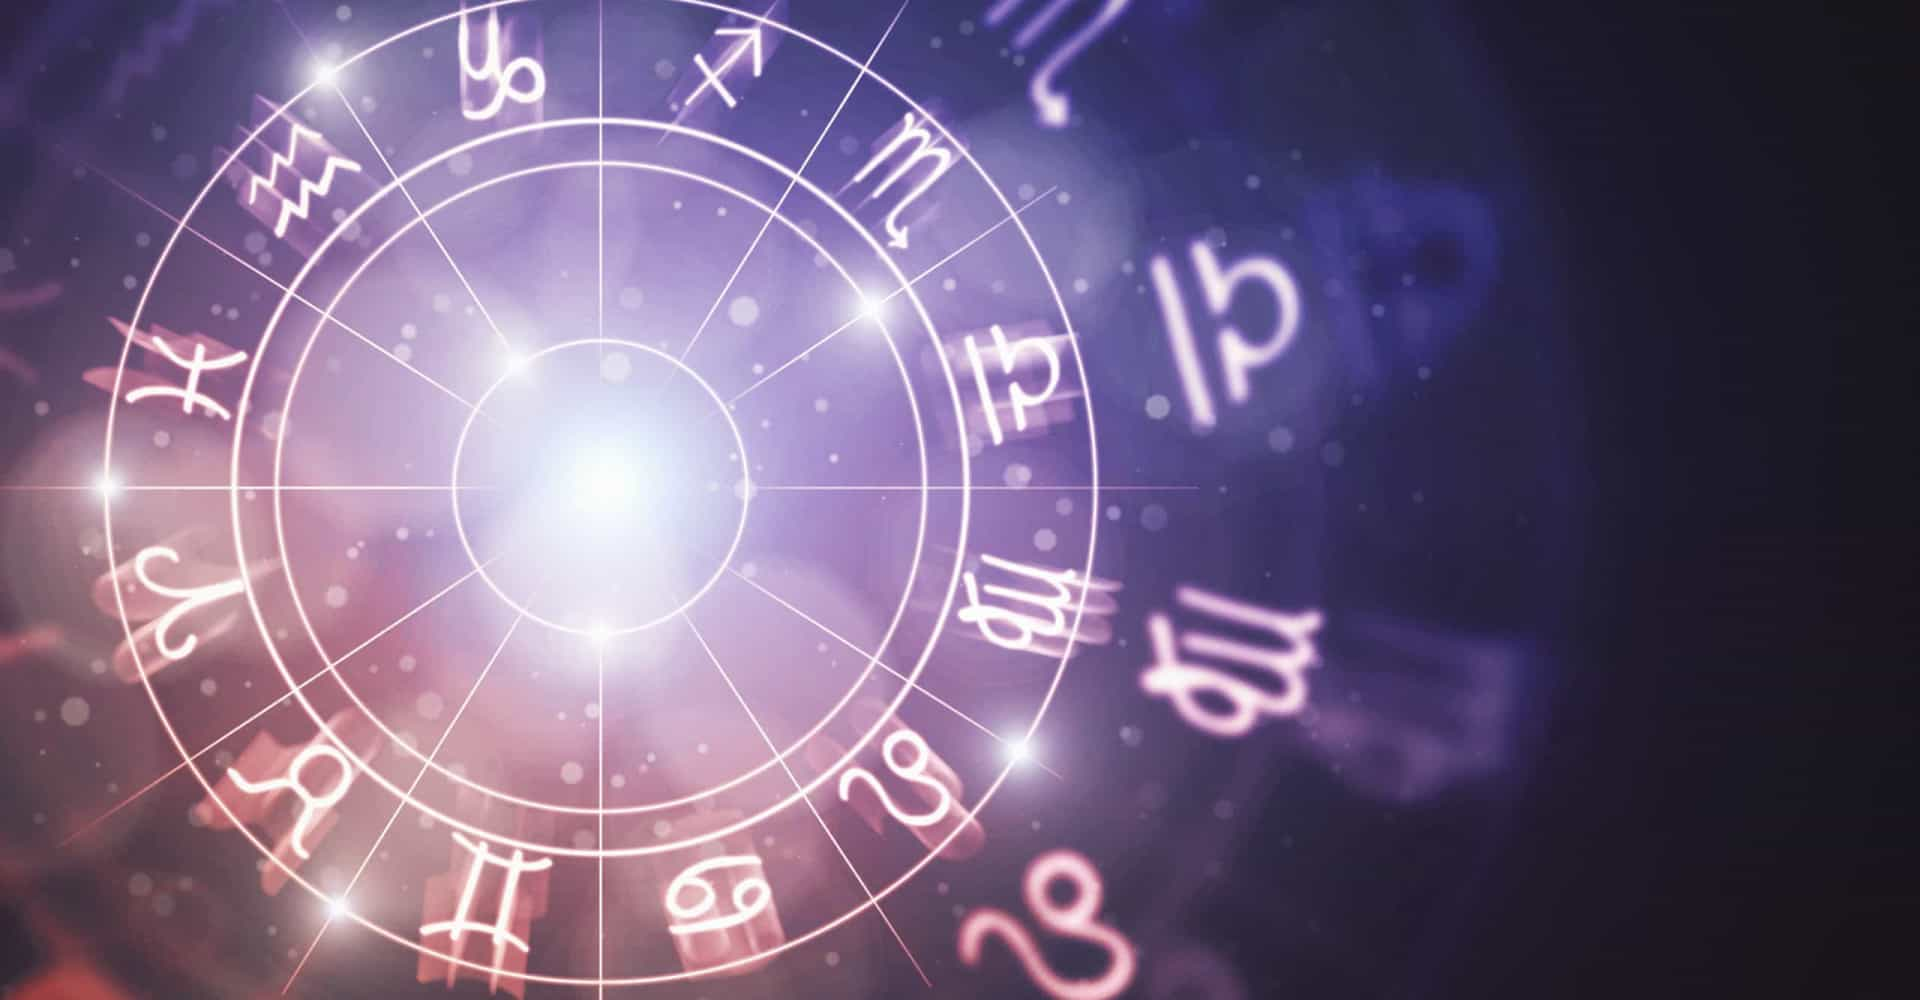 Discover your zodiac sign's power color